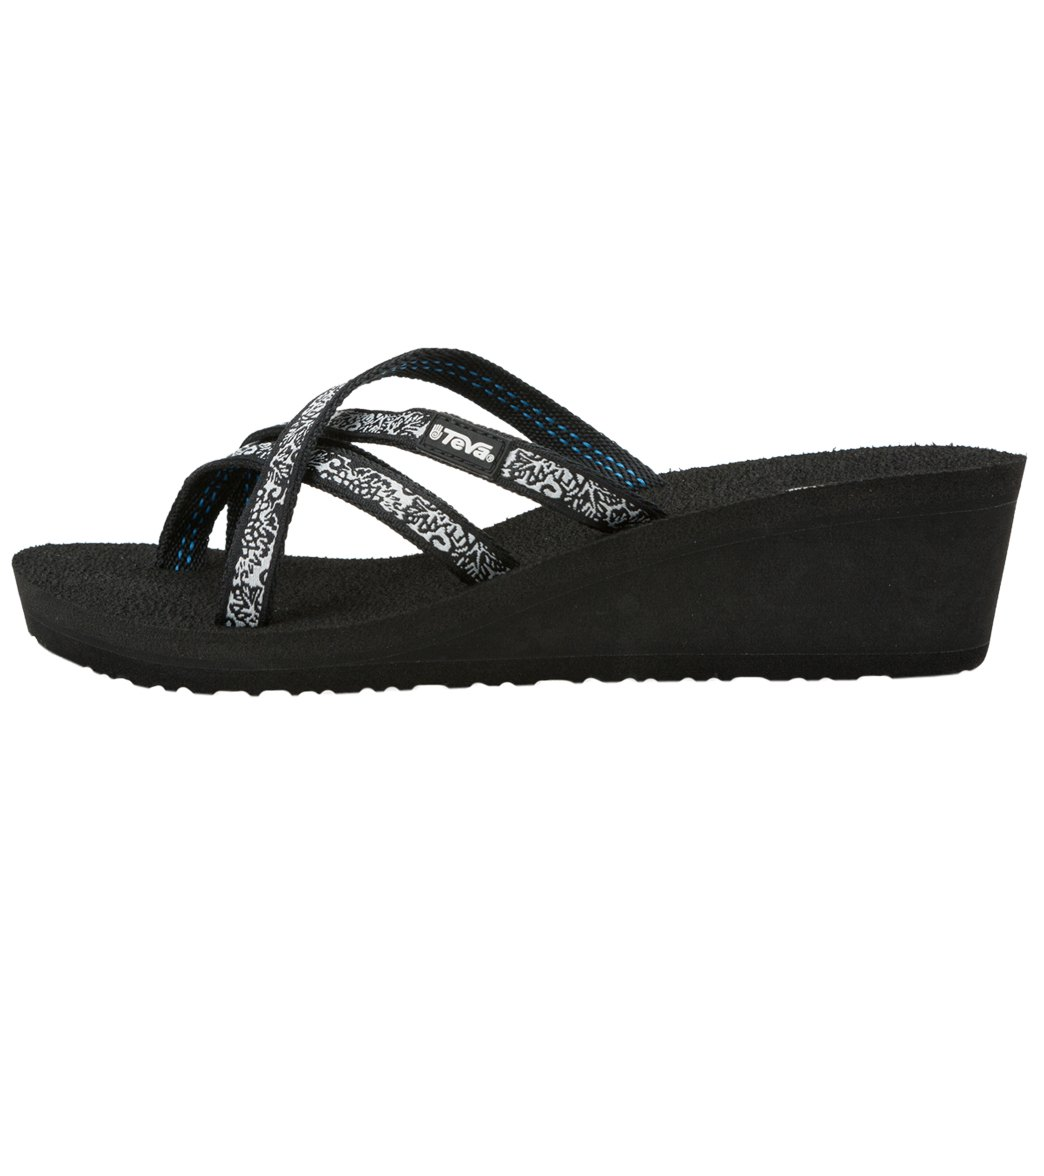 4054e5152218 Teva Women s Mush Mandalyn Wedge Ola 2 Sandal at SwimOutlet.com